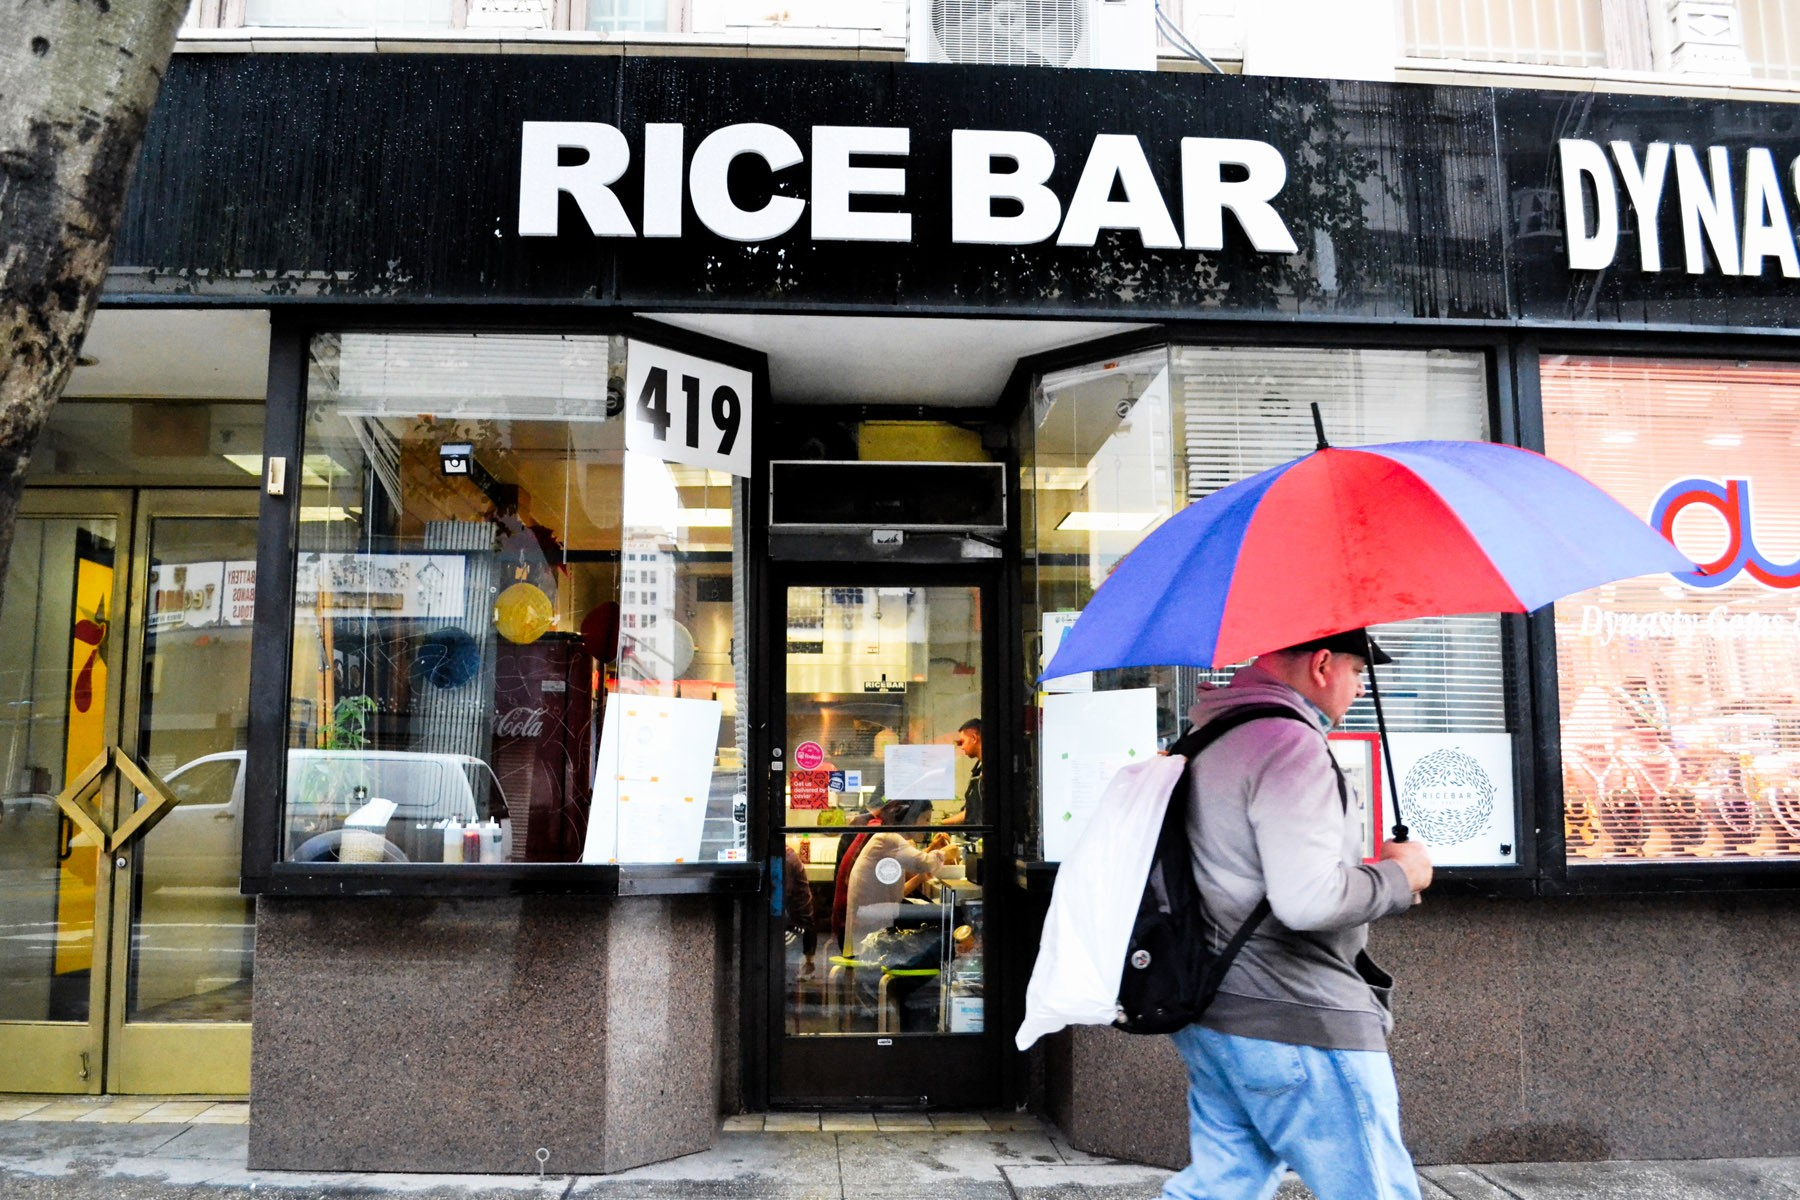 Ricebar opened in Downtown Los Angeles opened in mid-2015